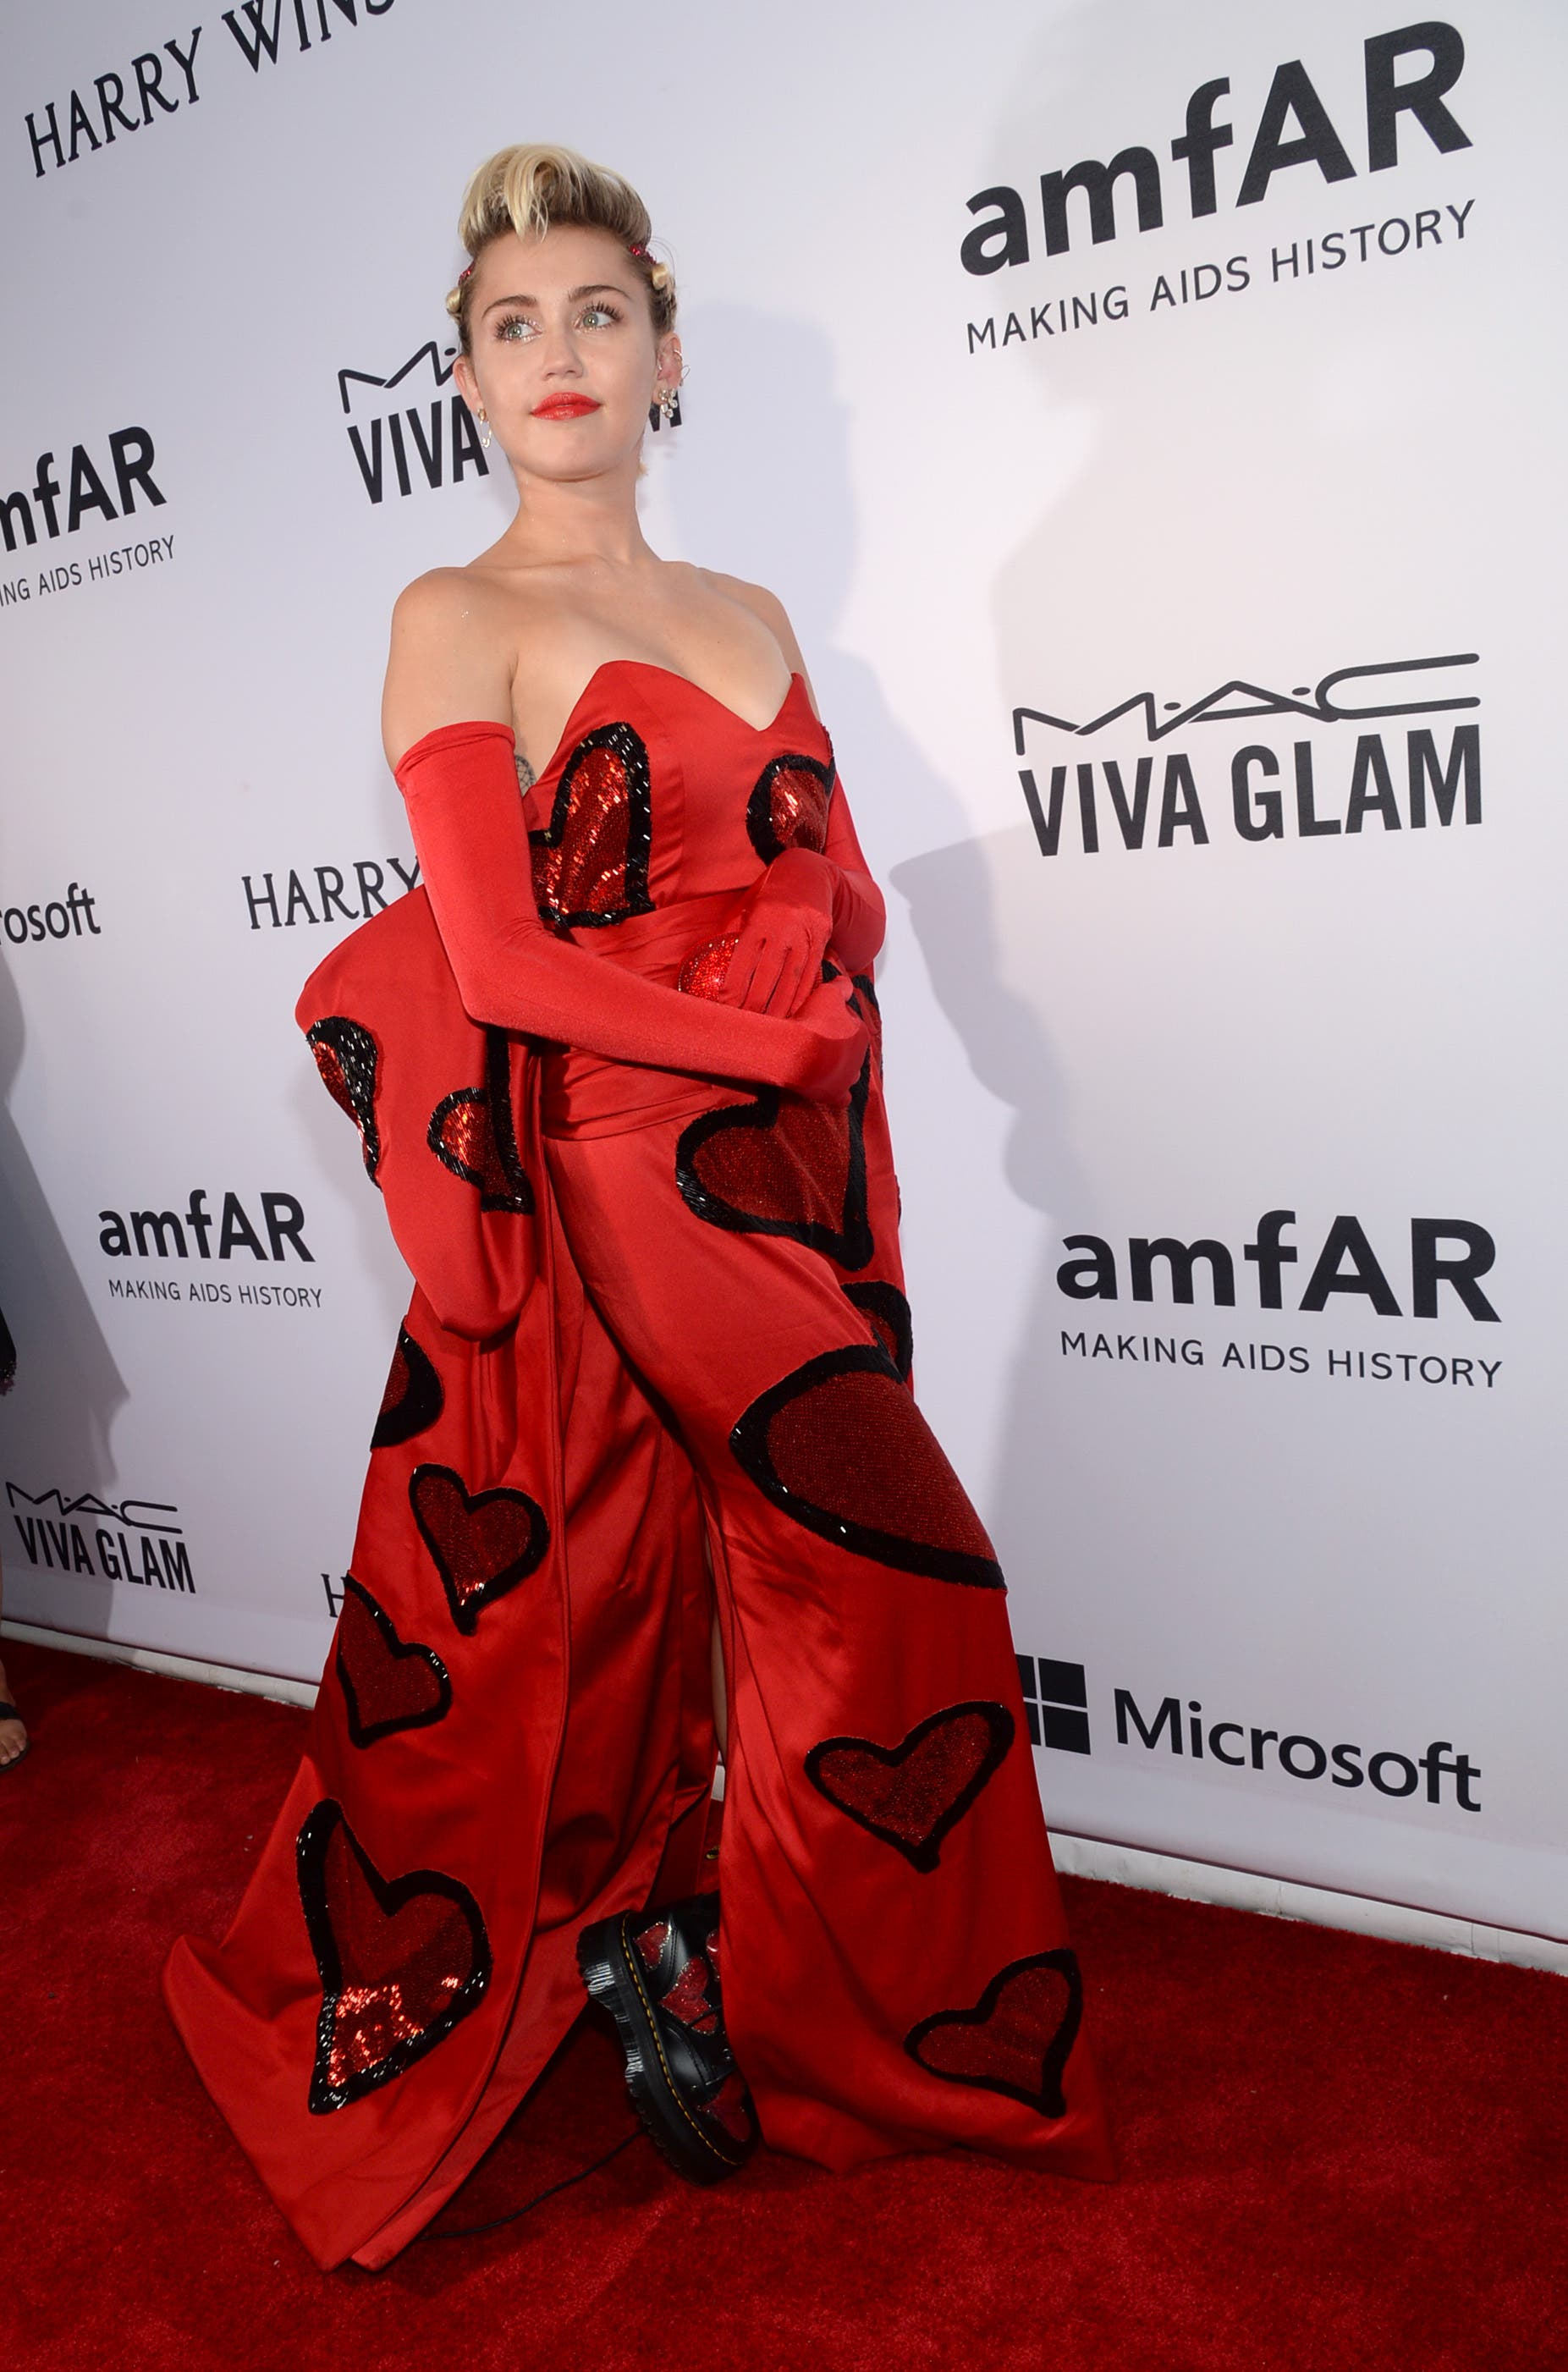 Miley Cyrus attends the 6th Annual amfAR New York Inspiration Gala at Spring Studios on Tuesday, June 16, 2015, in New York. (AP)